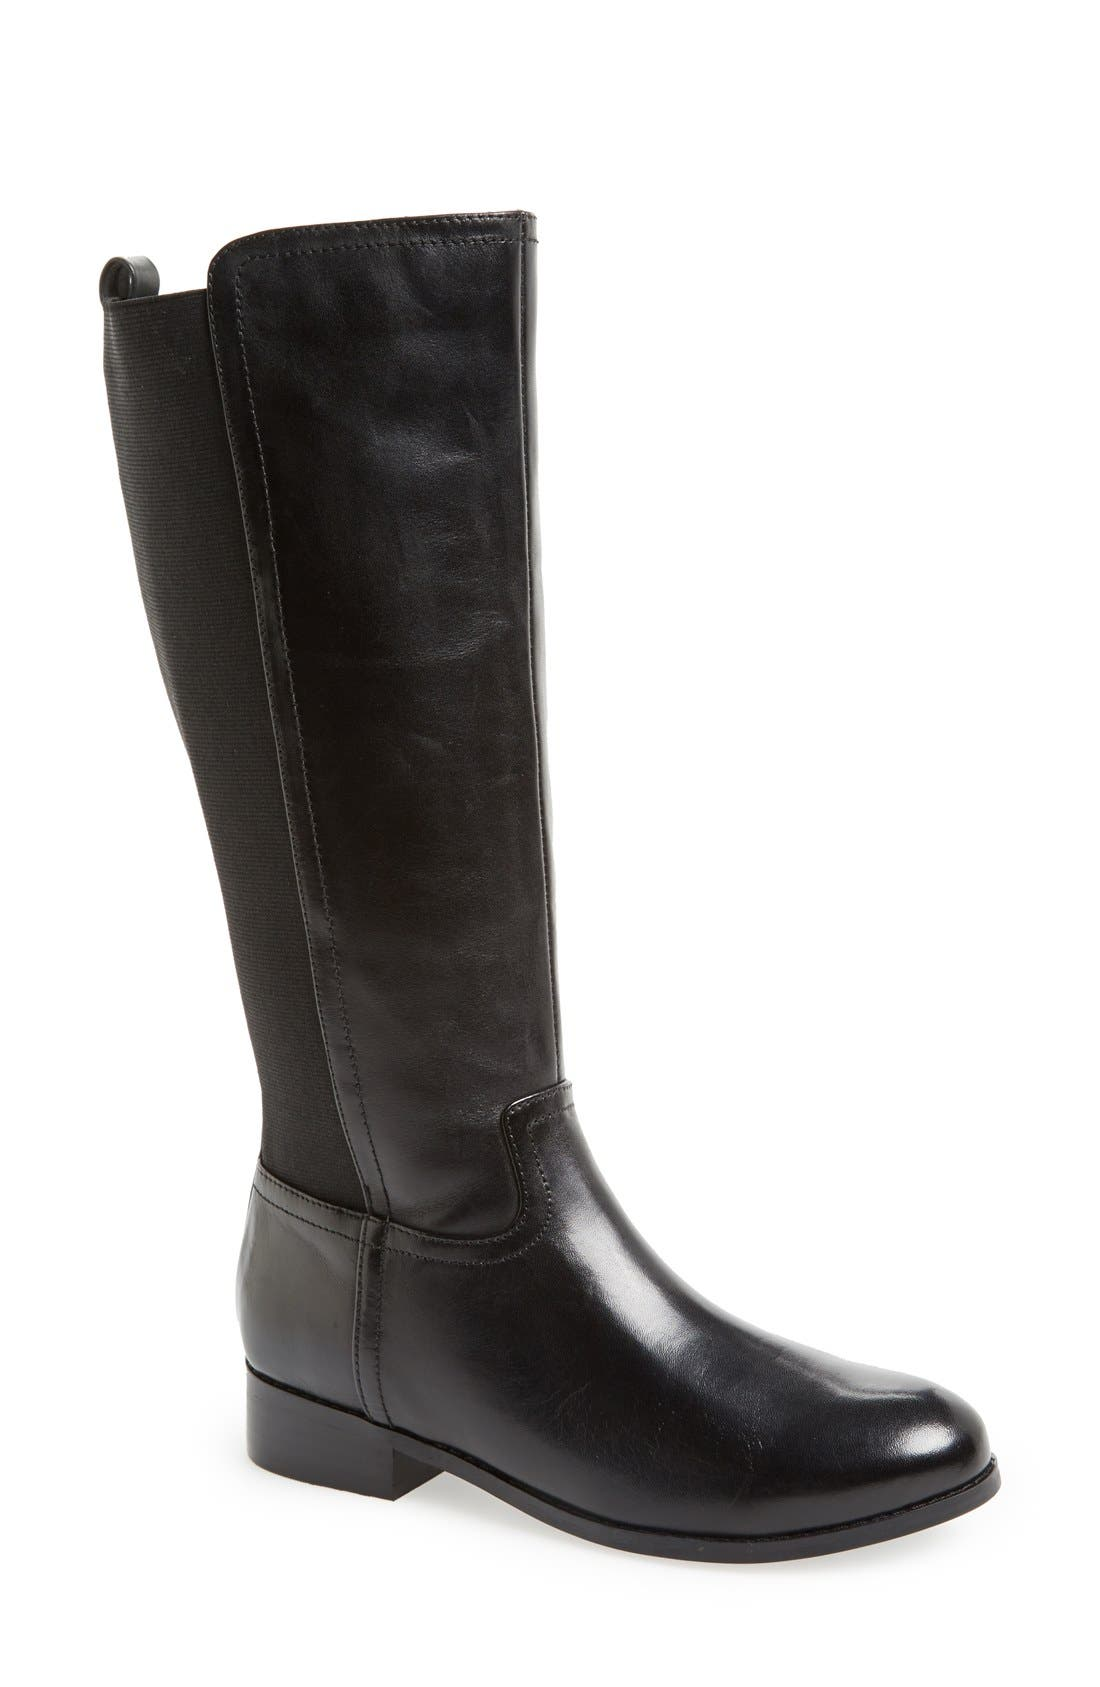 Main Image - Trotters 'Signature Lucia' Leather Riding Boot (Wide Calf) (Women)